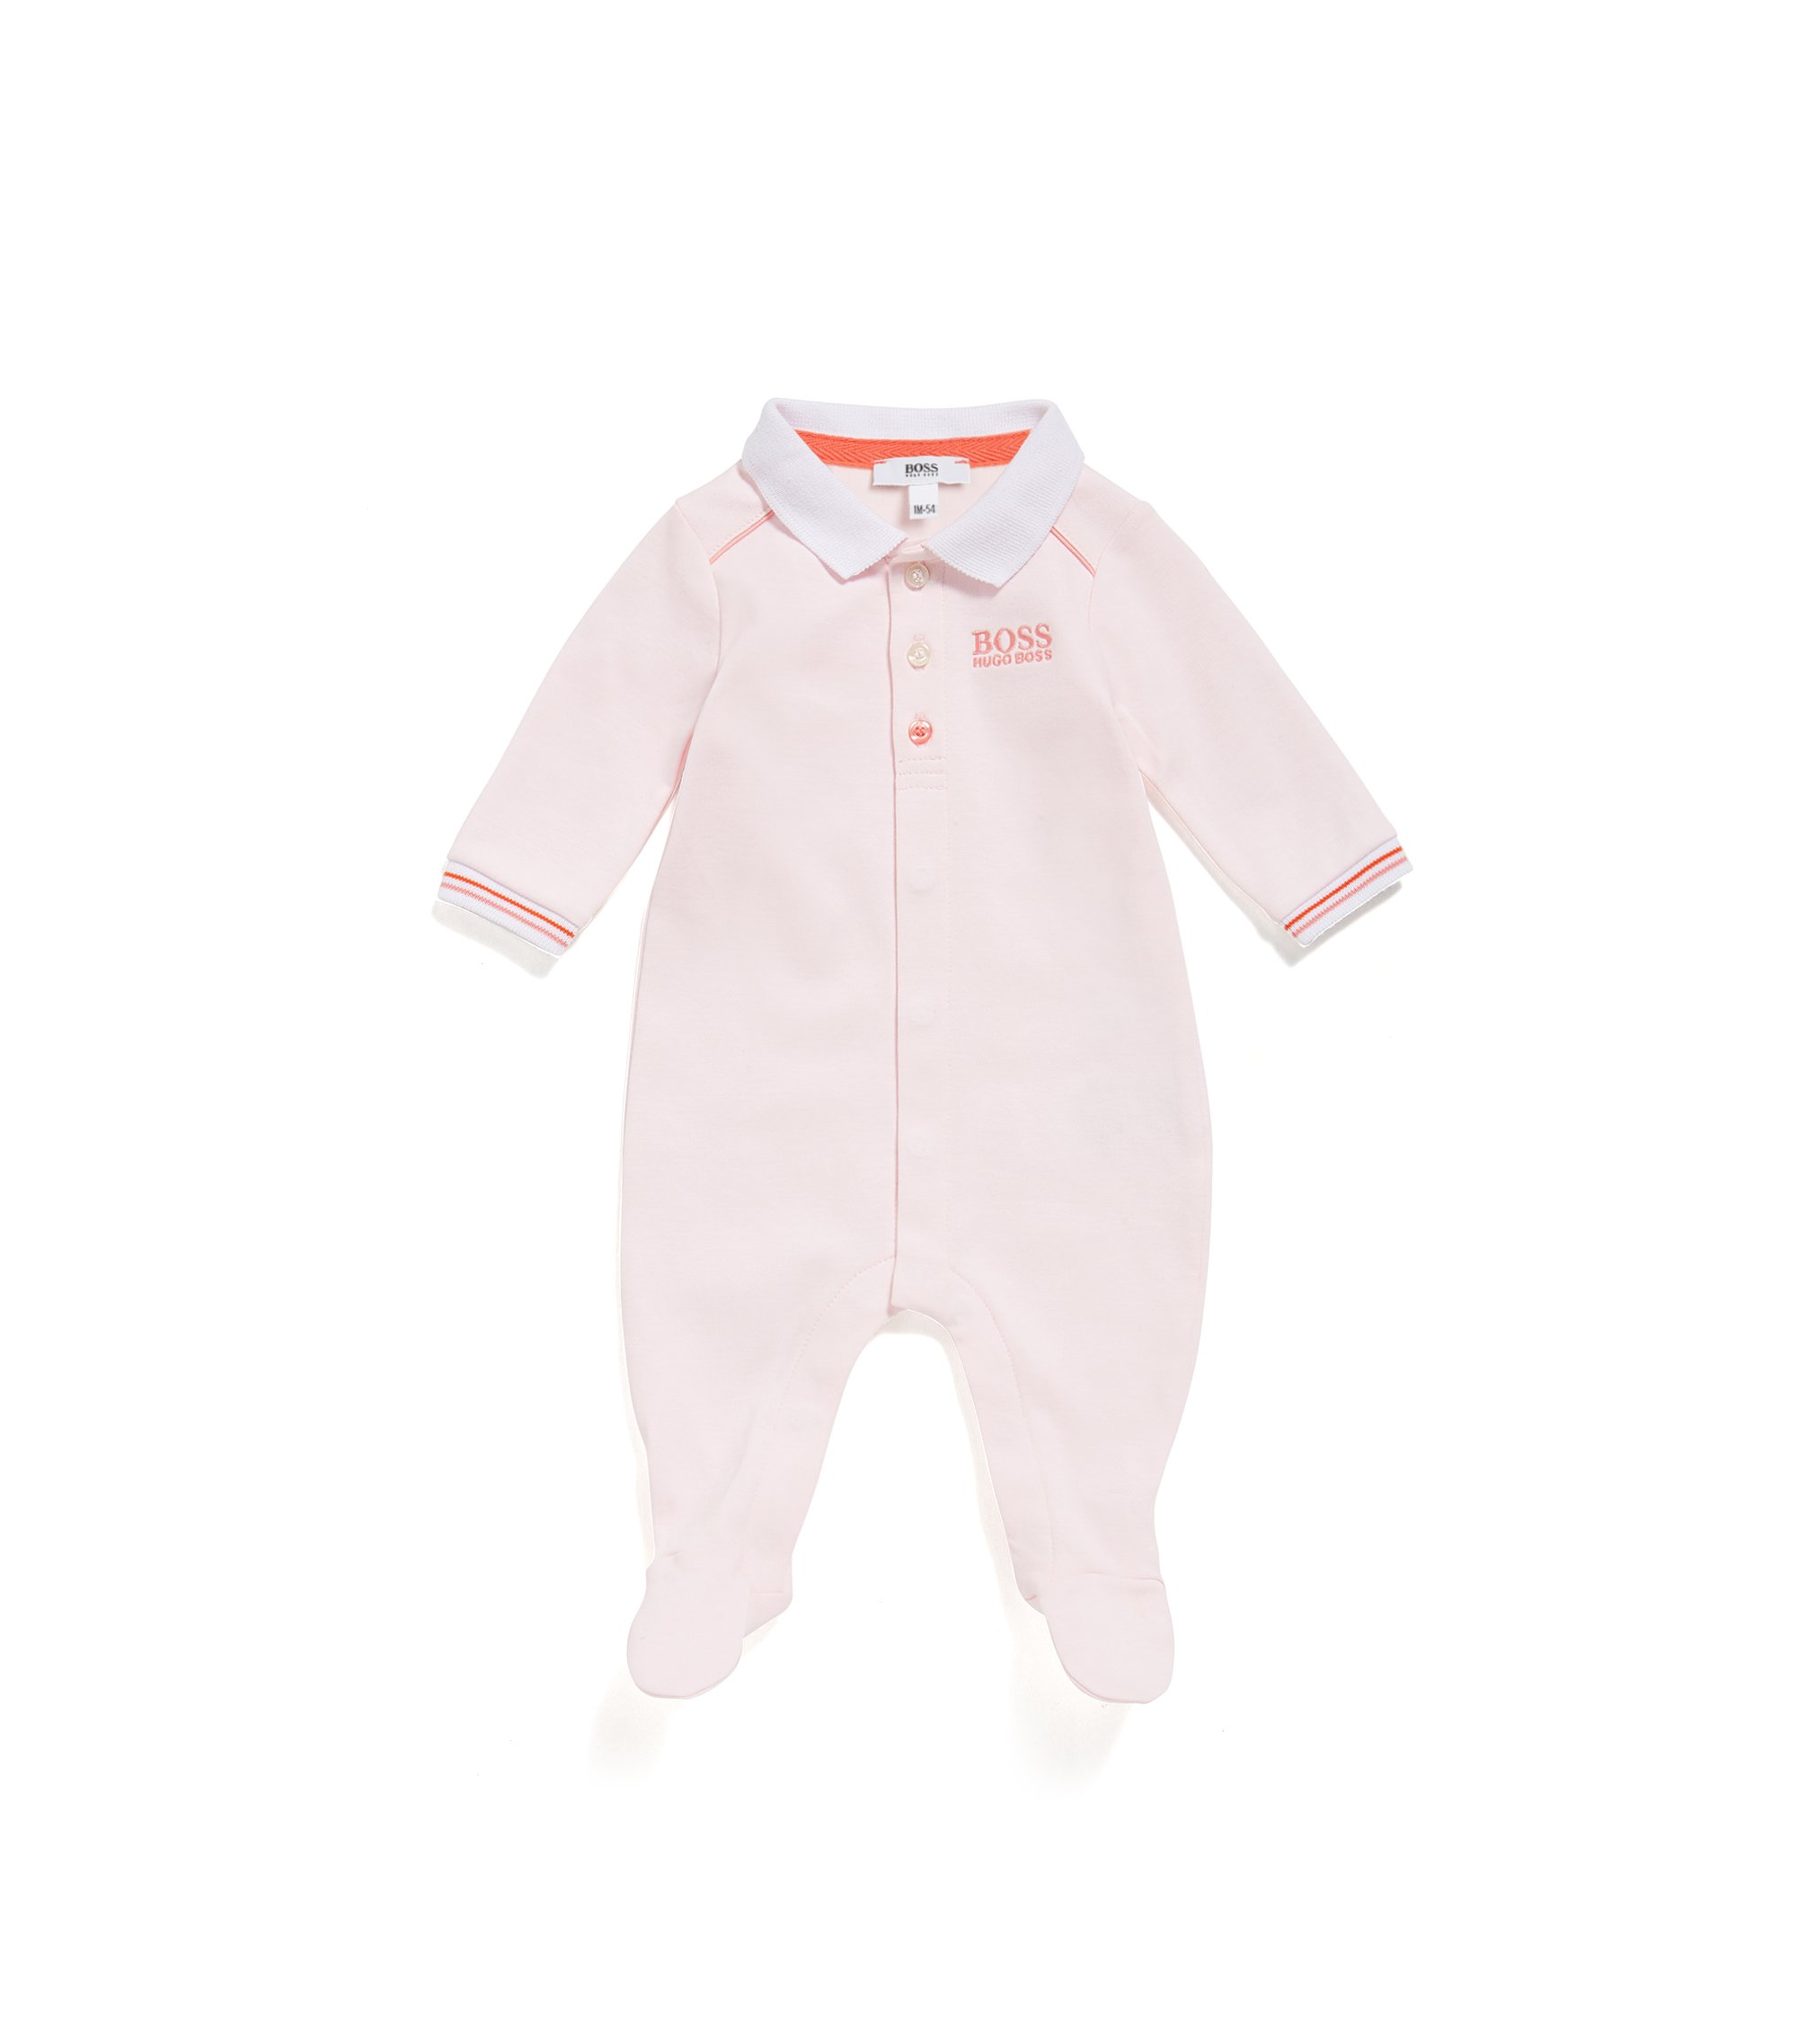 Pijama regular fit para bebé en algodón interlock, Rosa claro